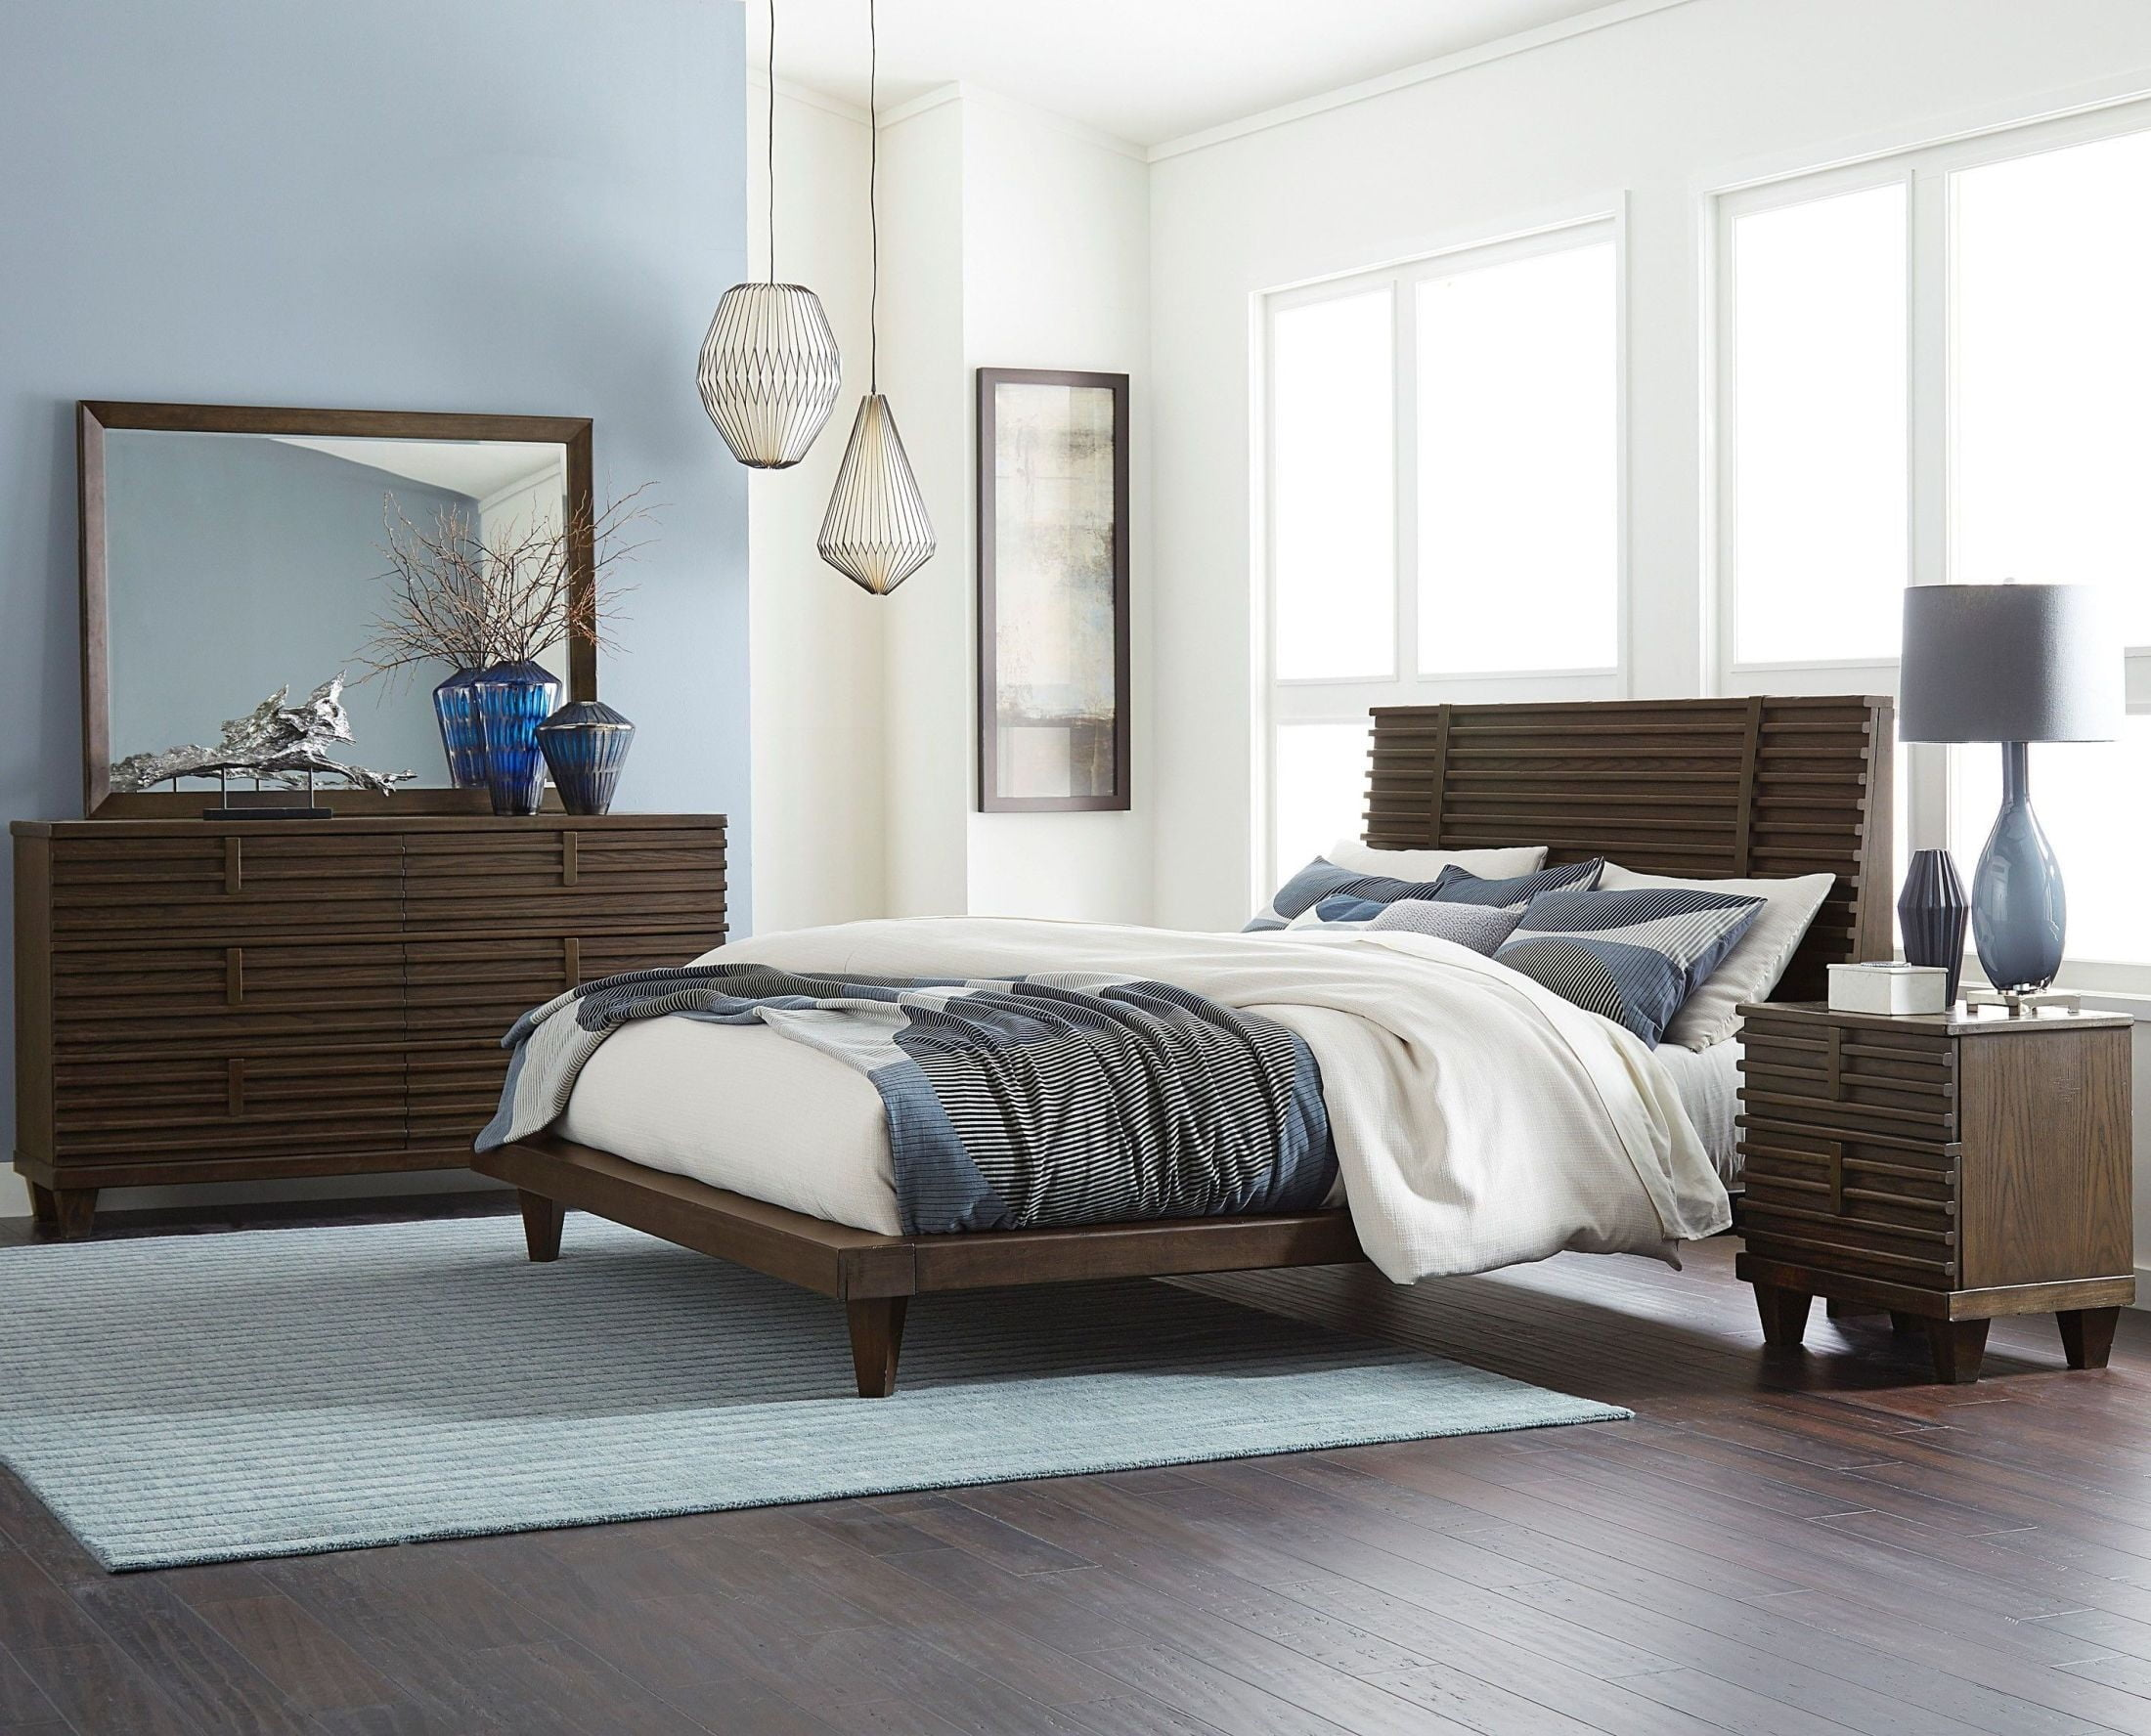 Ridgewood Rustic Burnished Oak Platform Bedroom Set From Homelegance |  Coleman Furniture